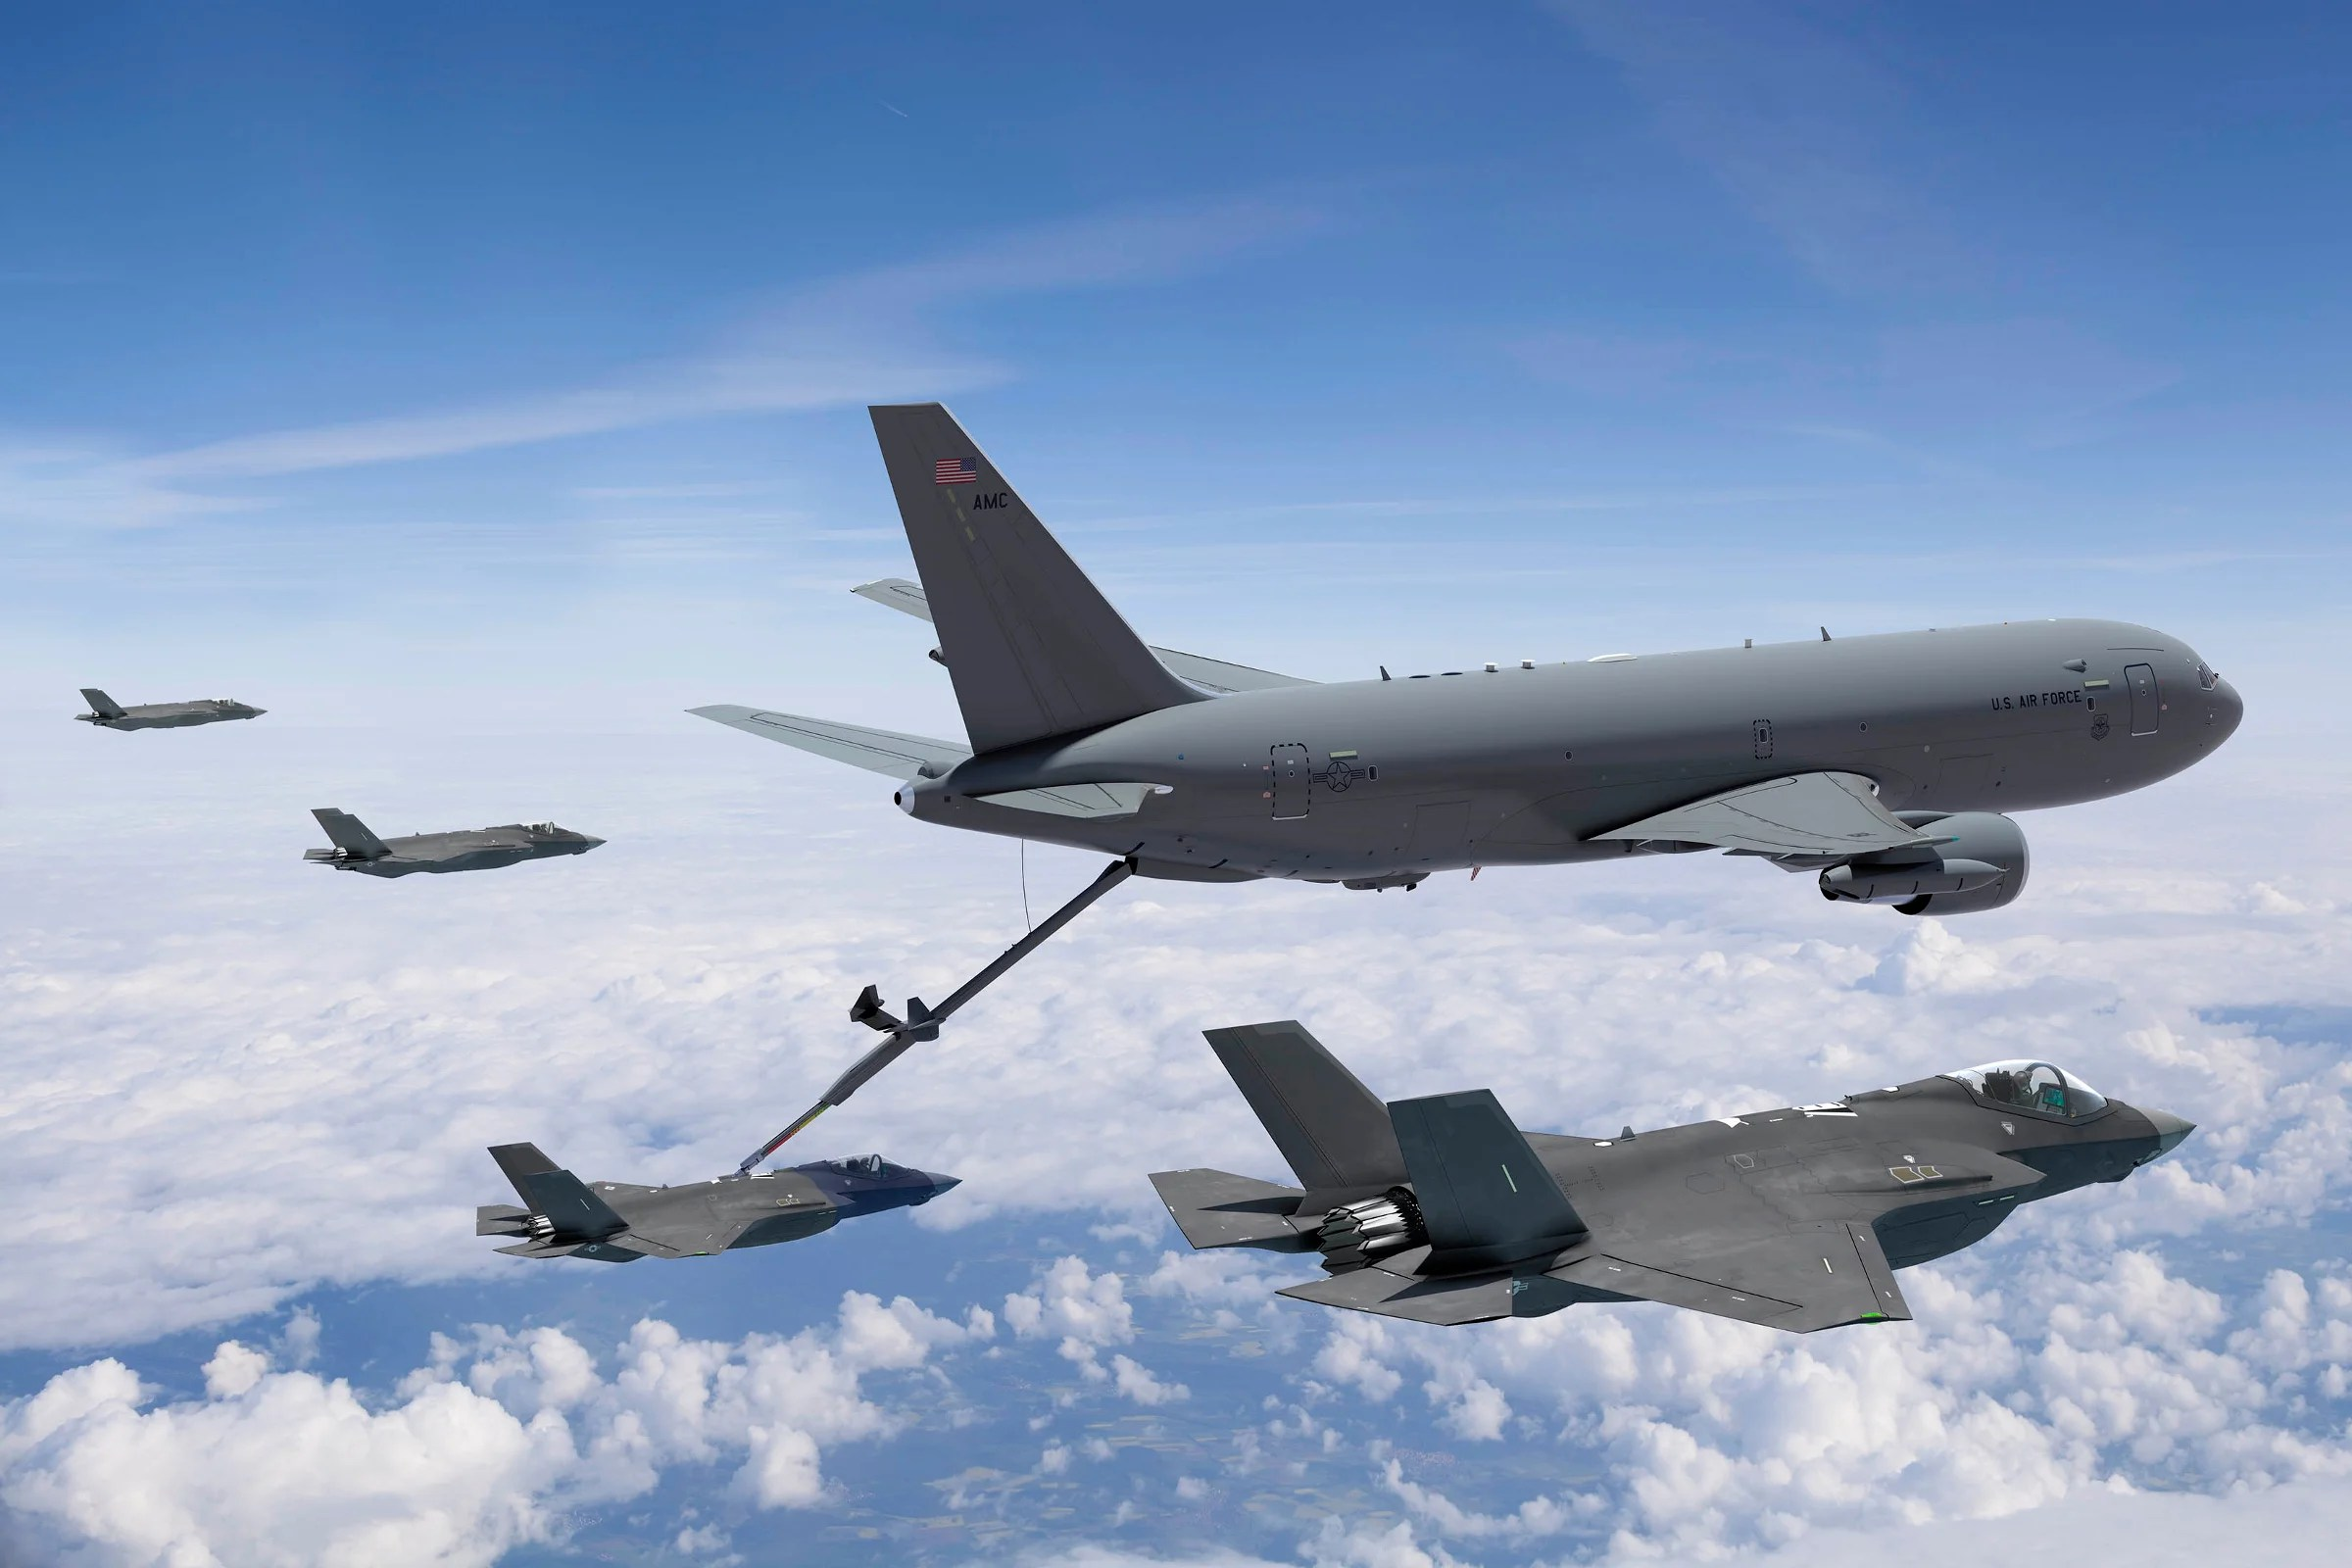 Boeing S Troubled Air Force Tanker Is Grounded Again